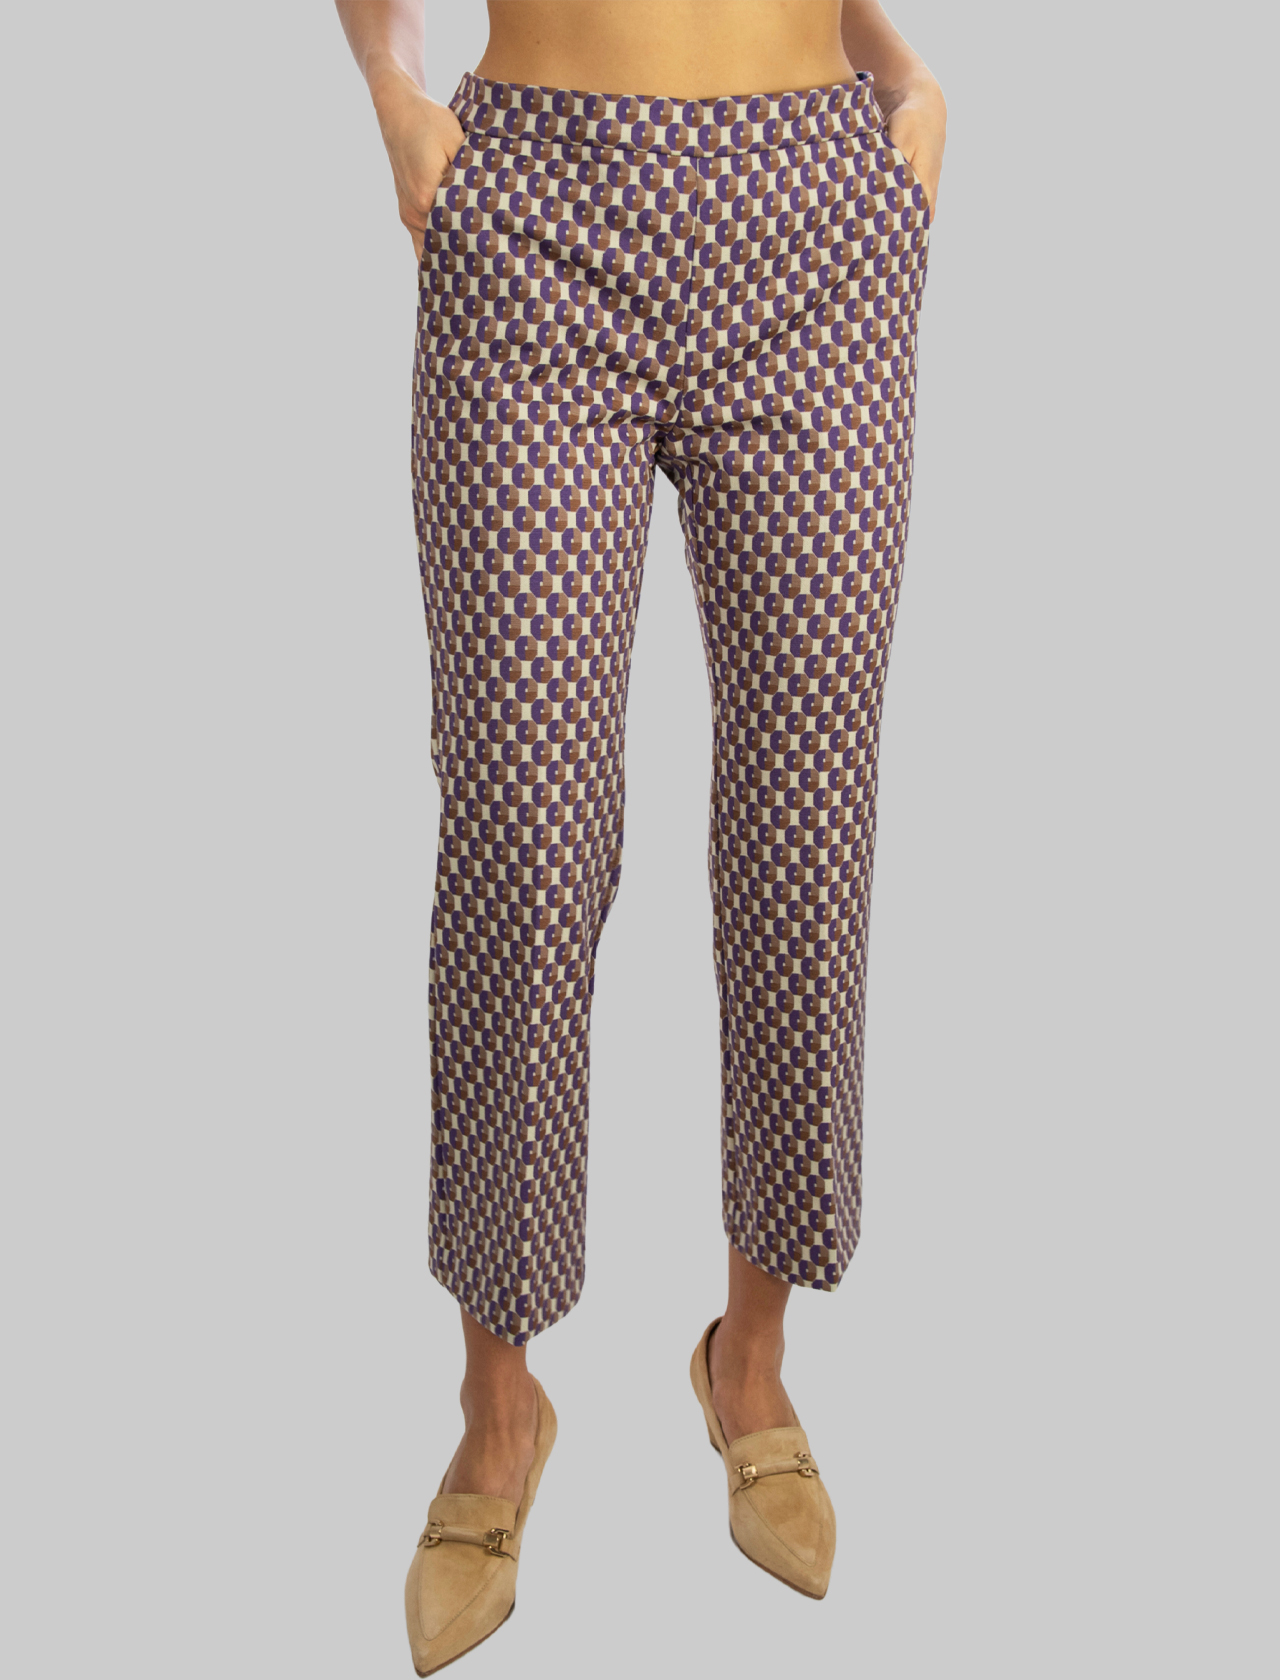 Women's Clothing American Pockets Geometric Jacquard Trousers in Beige and Mauve Maliparmi | Skirts and Pants | JH714460048B1236